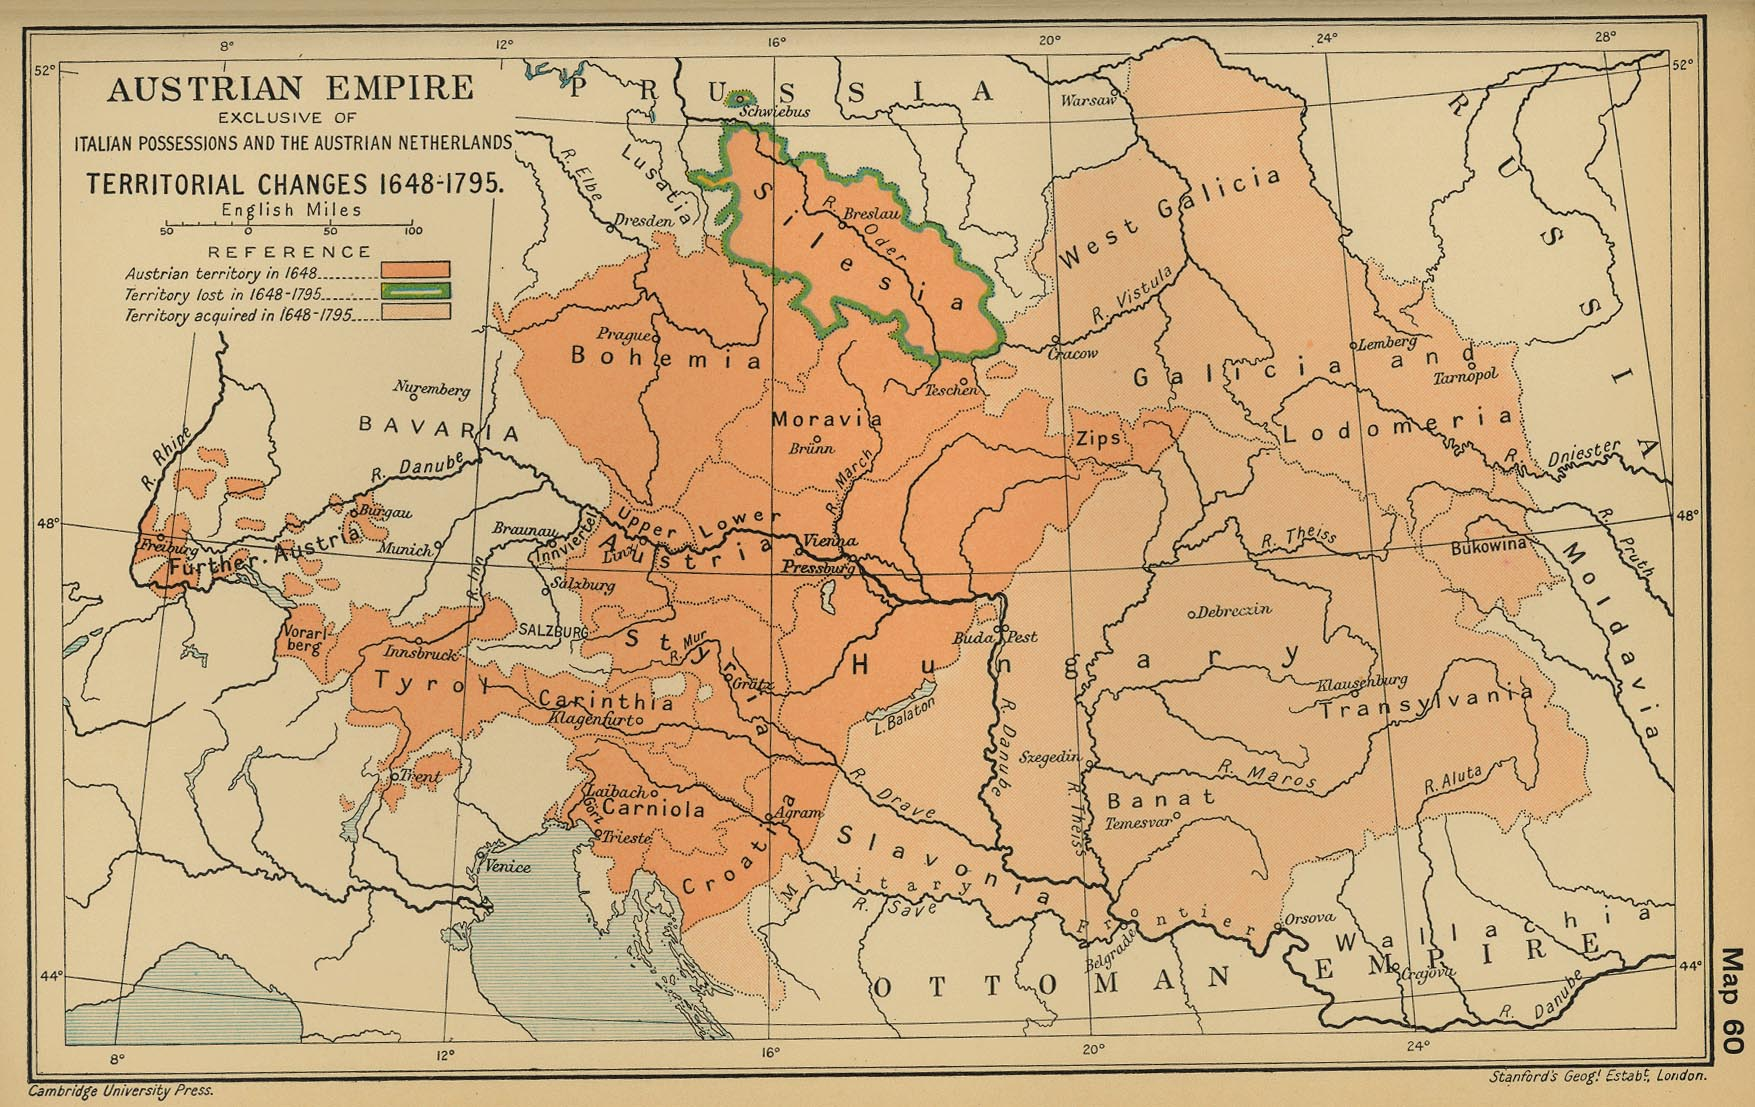 Map of the Austrian Empire 1648-1795